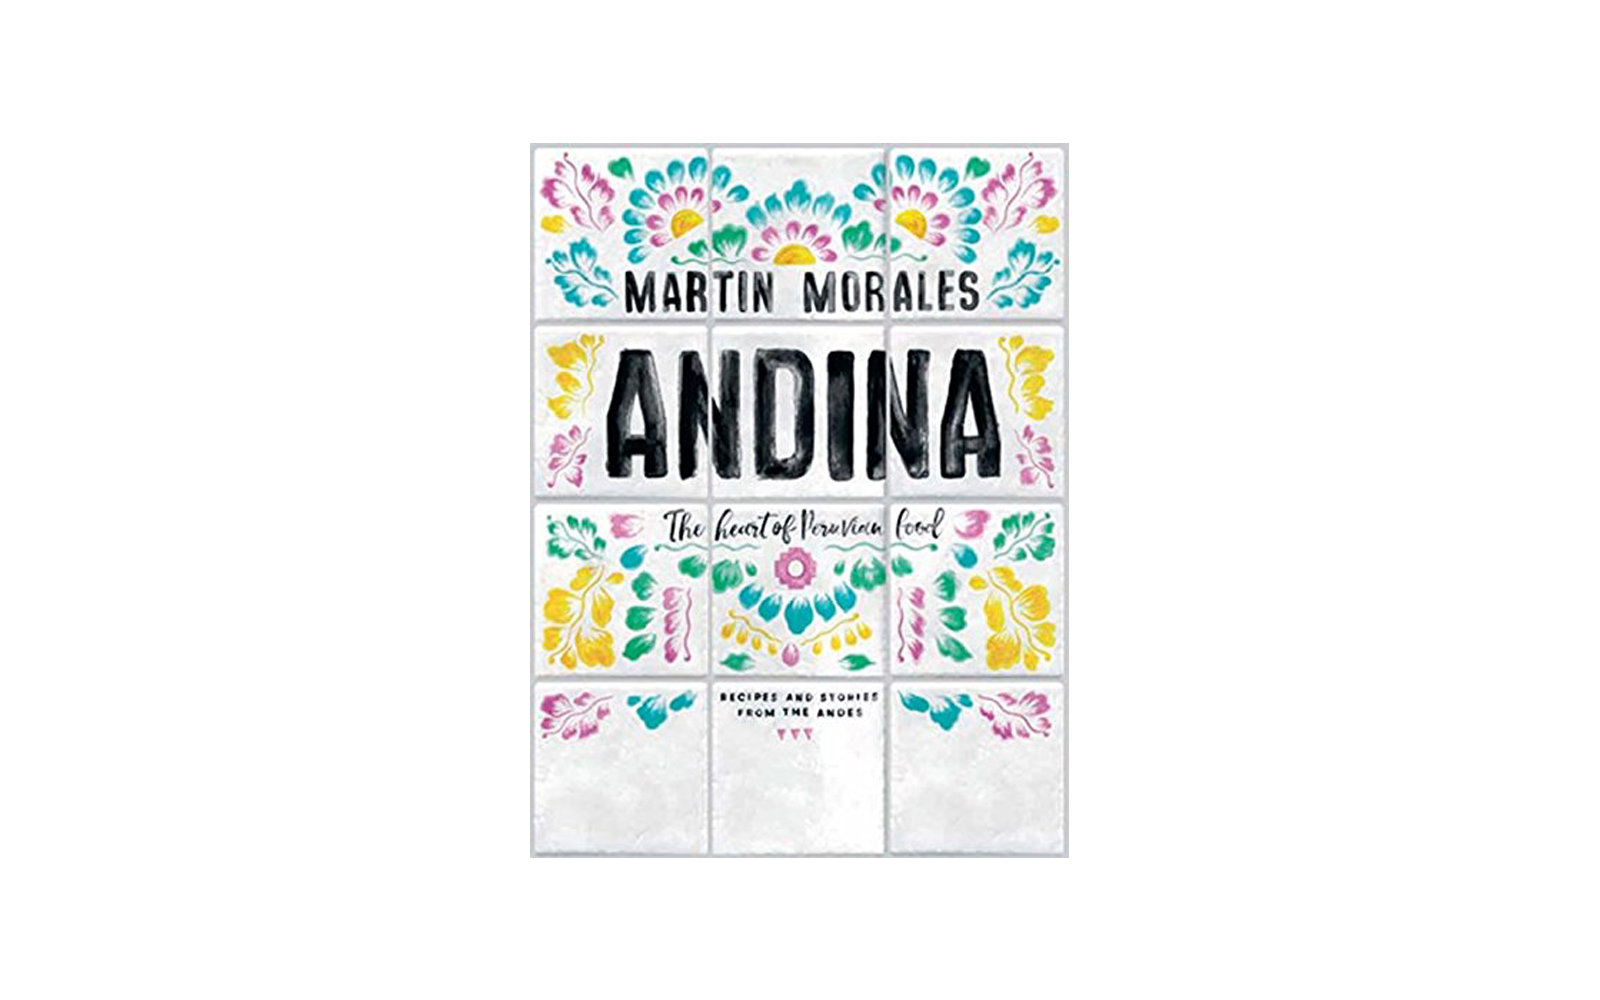 Andina, The Heart of Peruvian Food, by Martin Morales